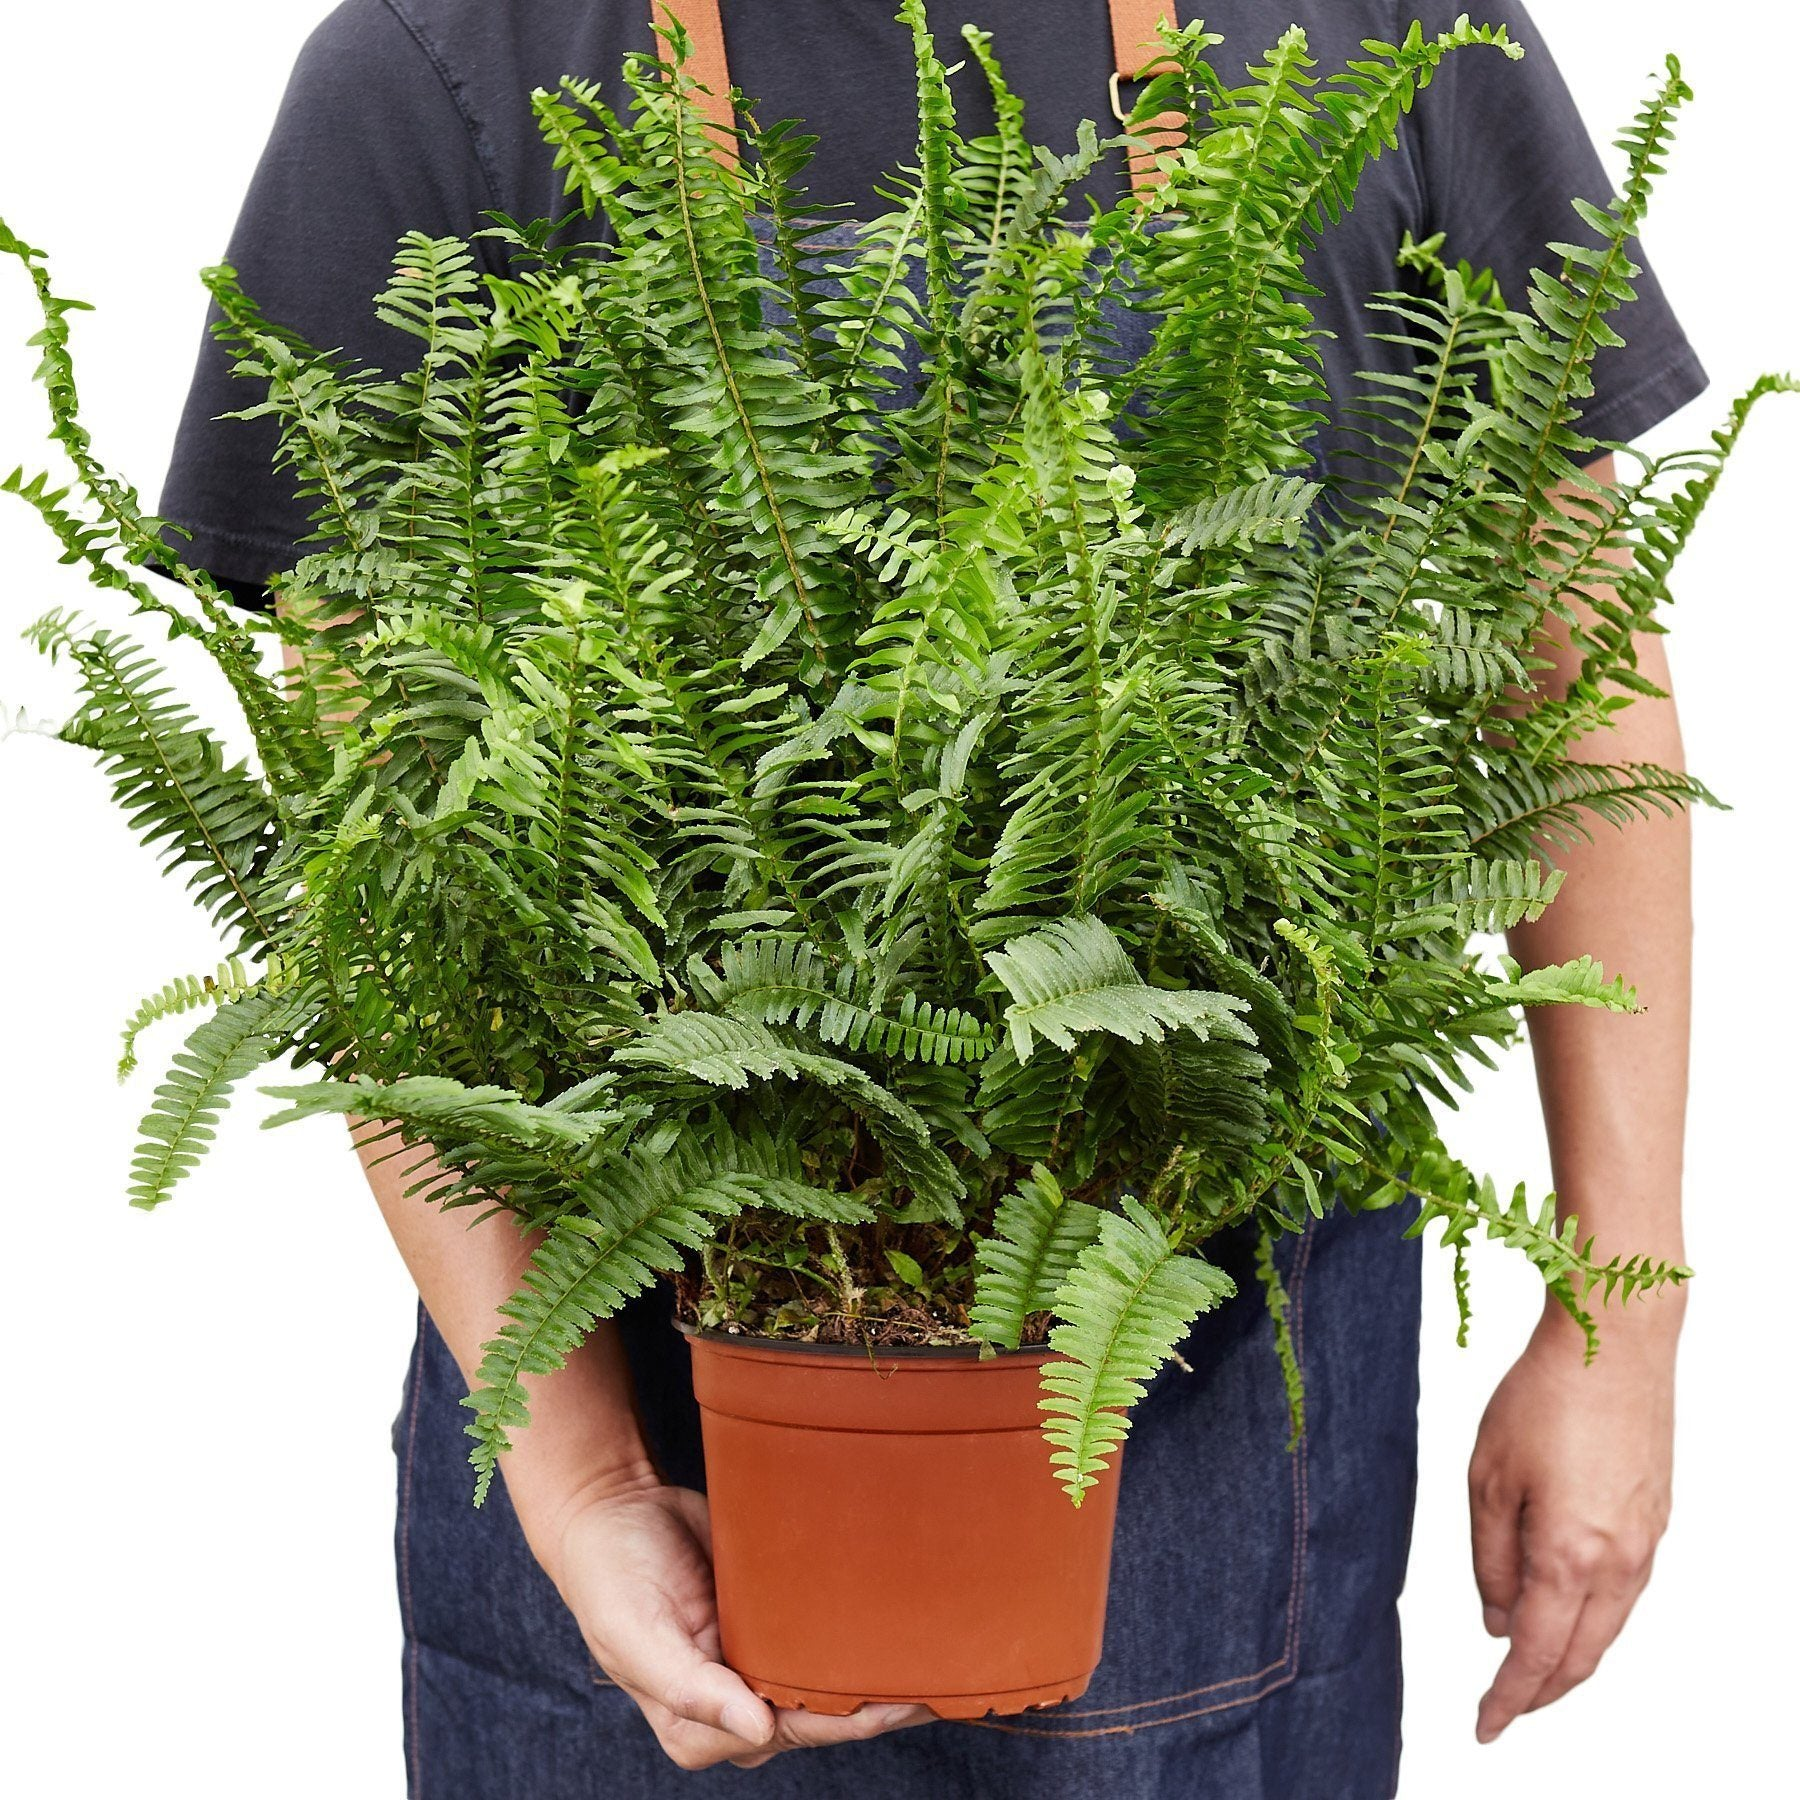 Jester's Crown Fern Indoor Plants House Plant Shop